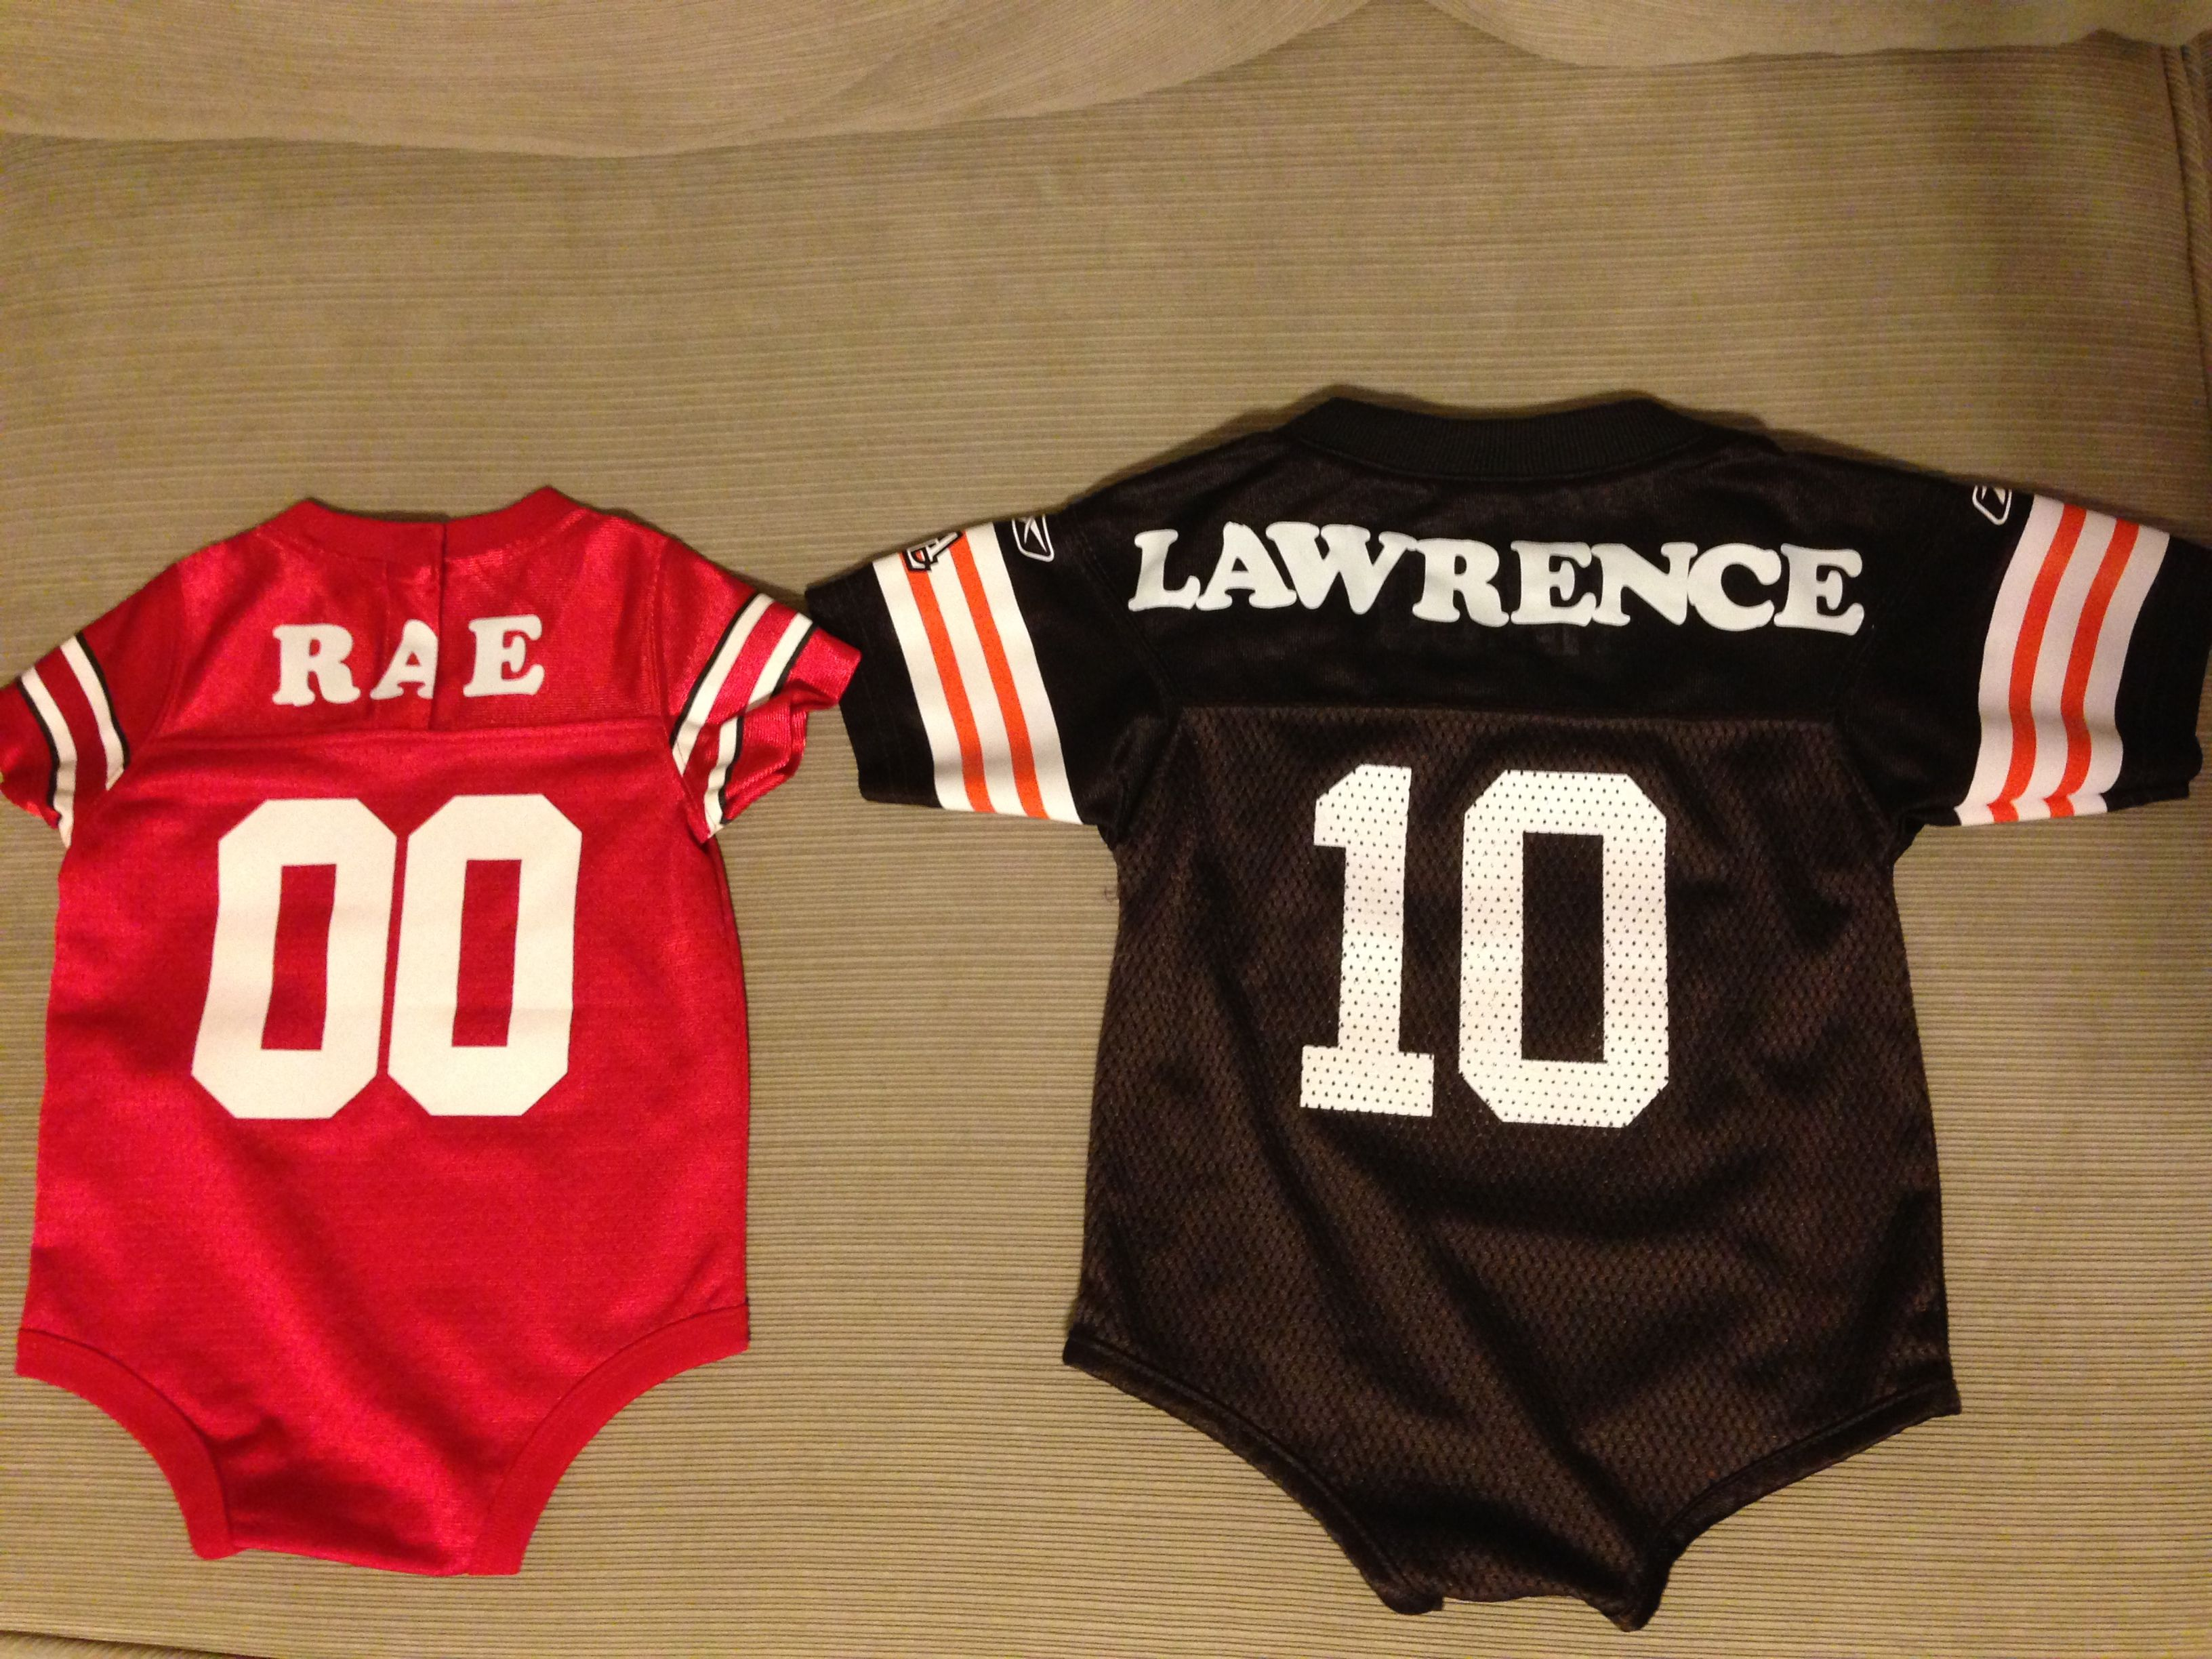 Goodbye pre-printed jersey, hello personalized baby jersey